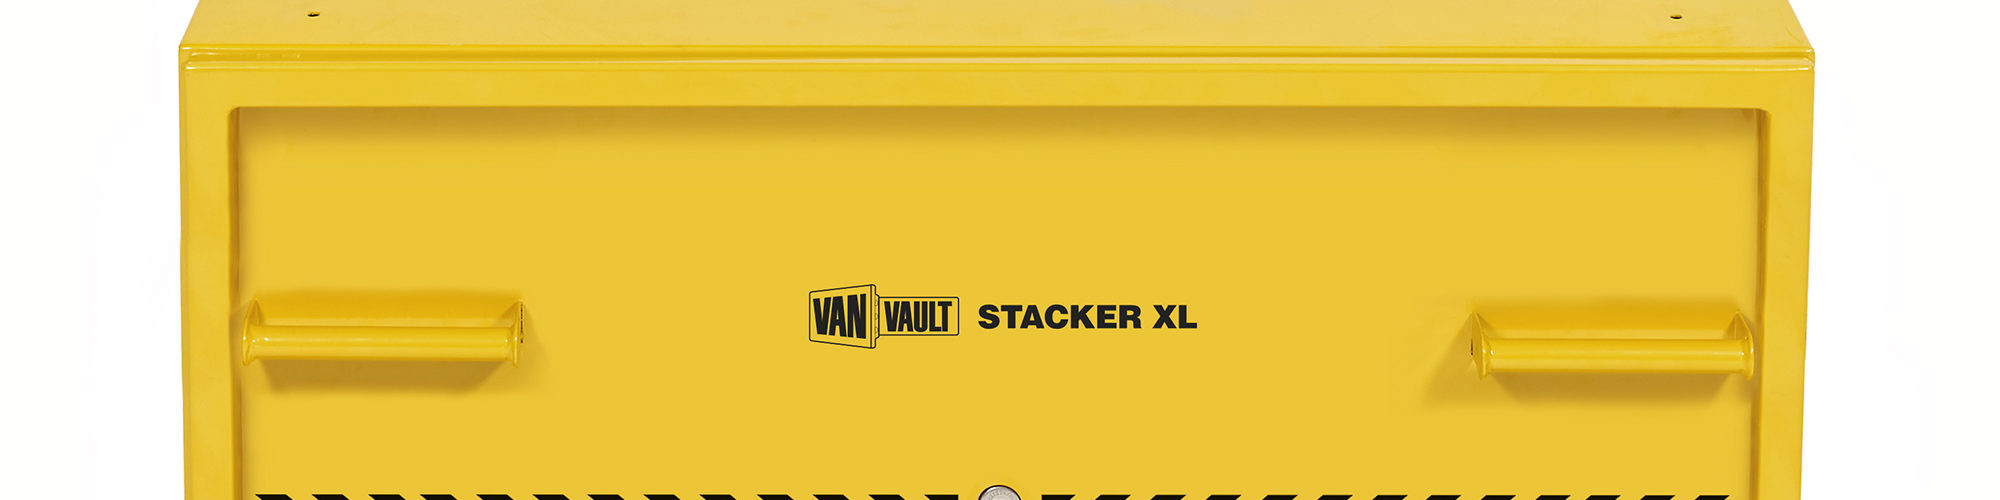 Van Vault Stacker XL S10347